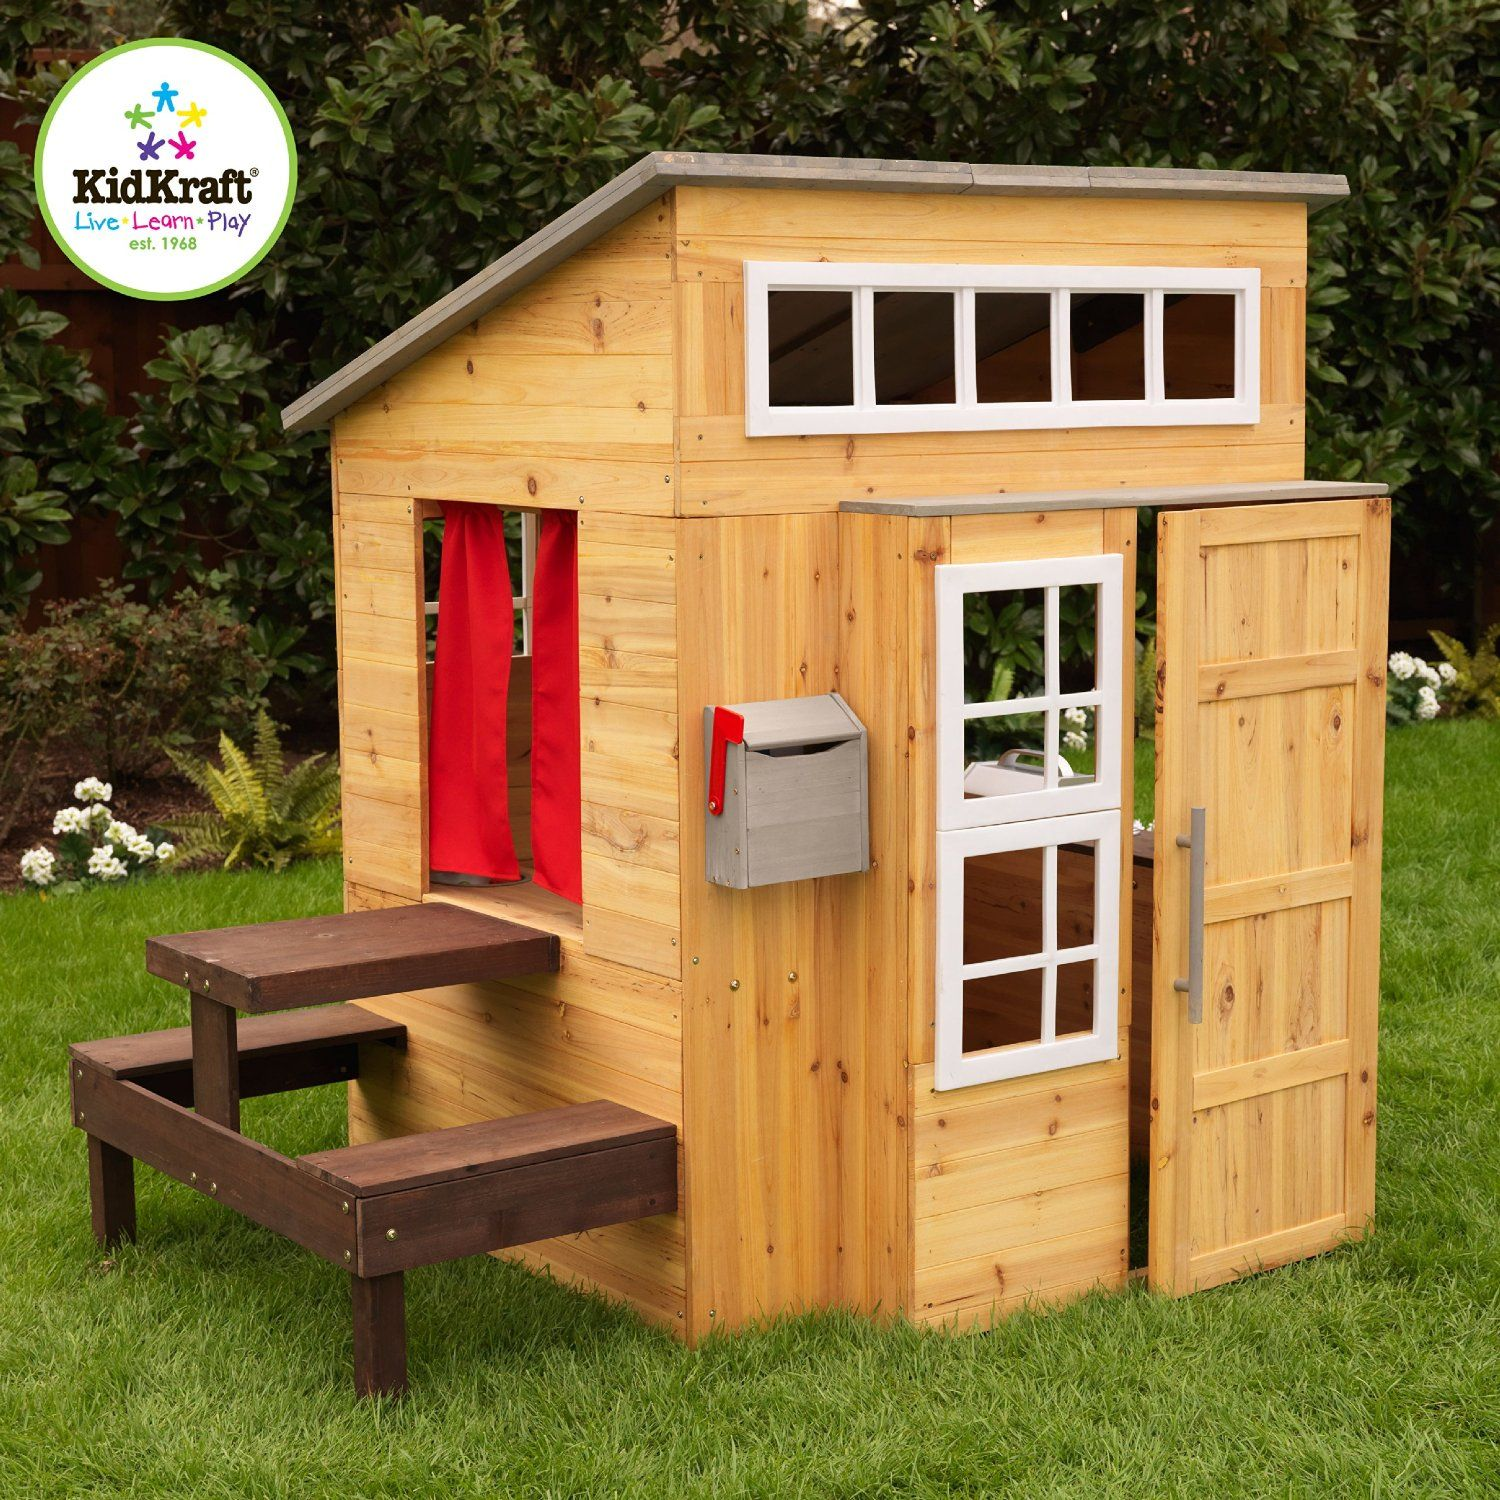 How To Build A Playhouse With Wooden Pallets Step By Step Tutorial Play Houses Playhouse Outdoor Build A Playhouse